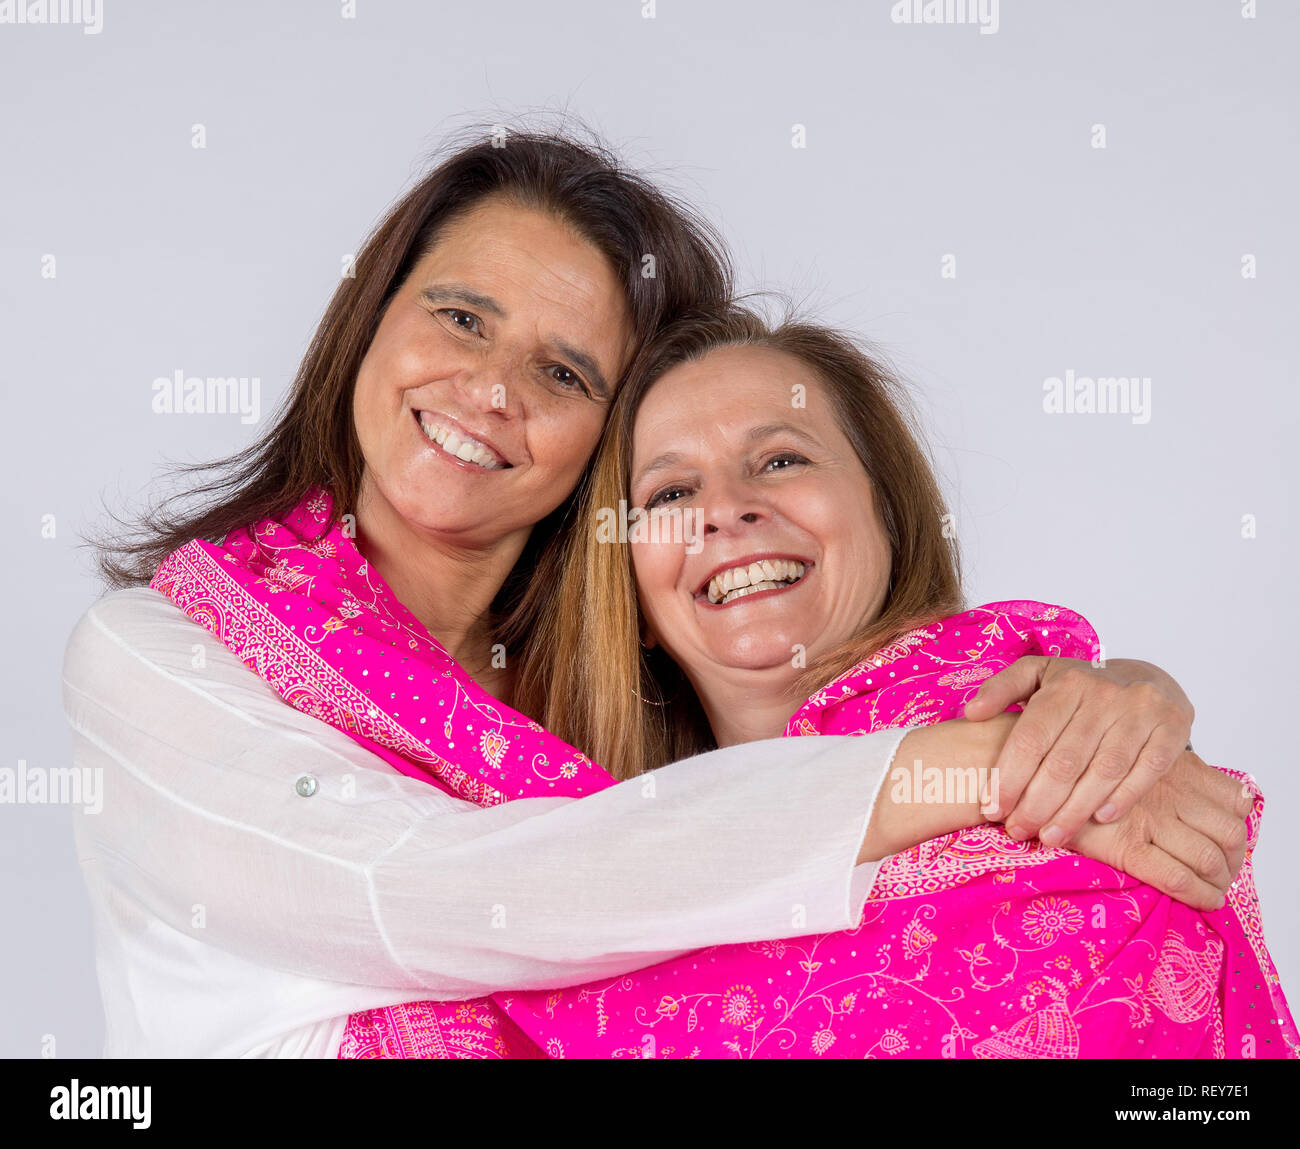 Photo Shoot Of Two Friends Posing With Pink Foulard And Affectionate Attitude Stock Photo Alamy Inspiracion para hacer fotos con amigas parte dos. alamy